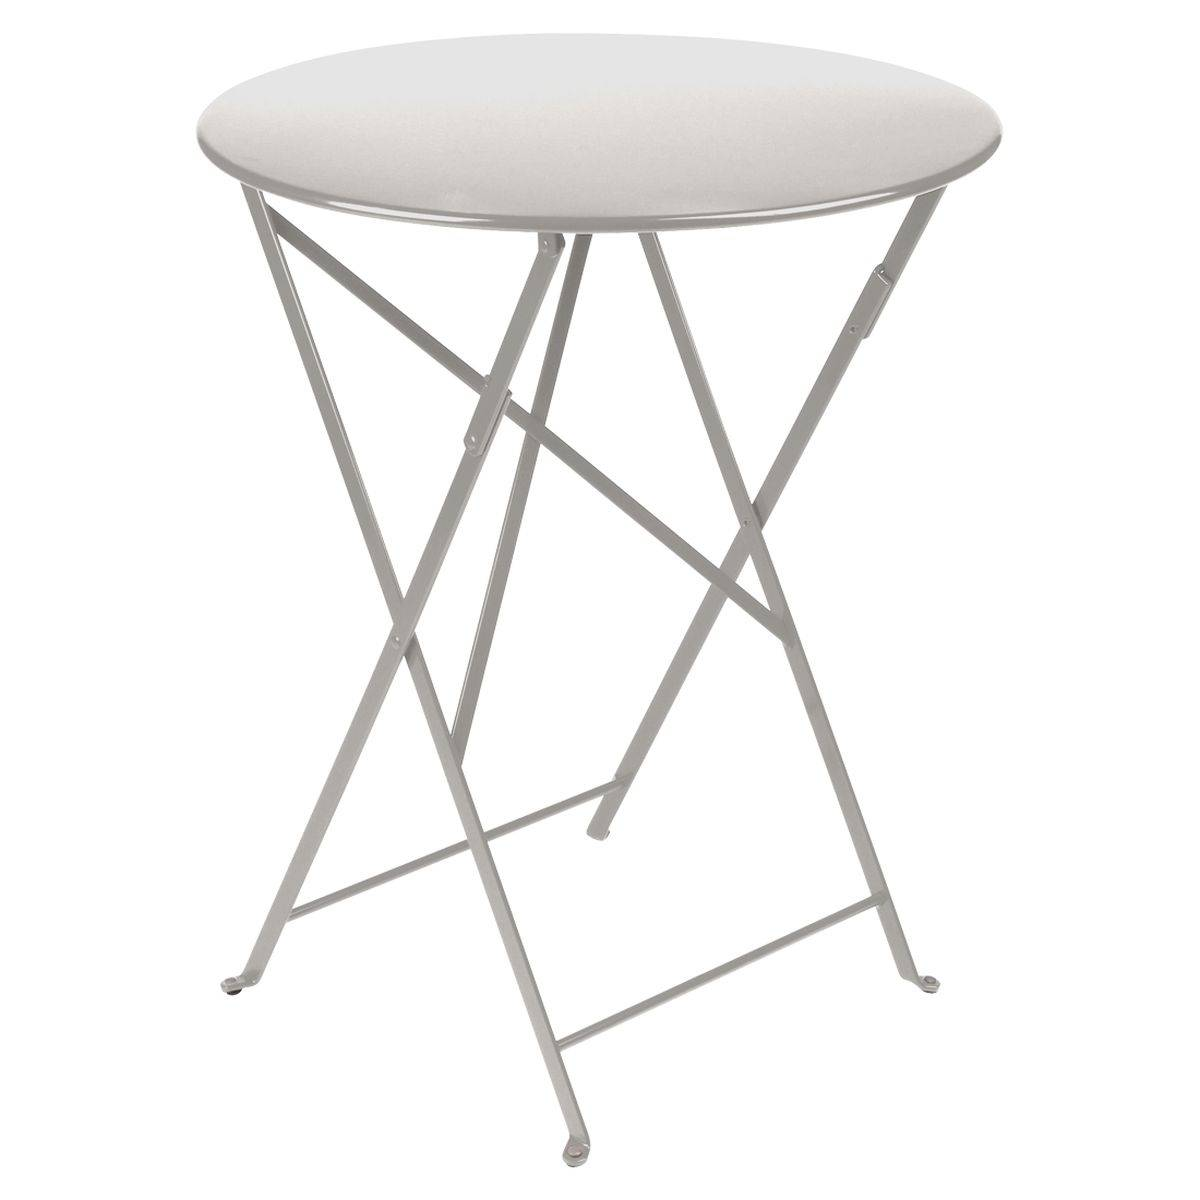 Bistro table round 60cm bistro outdoor furniture jardin for Jardin 85